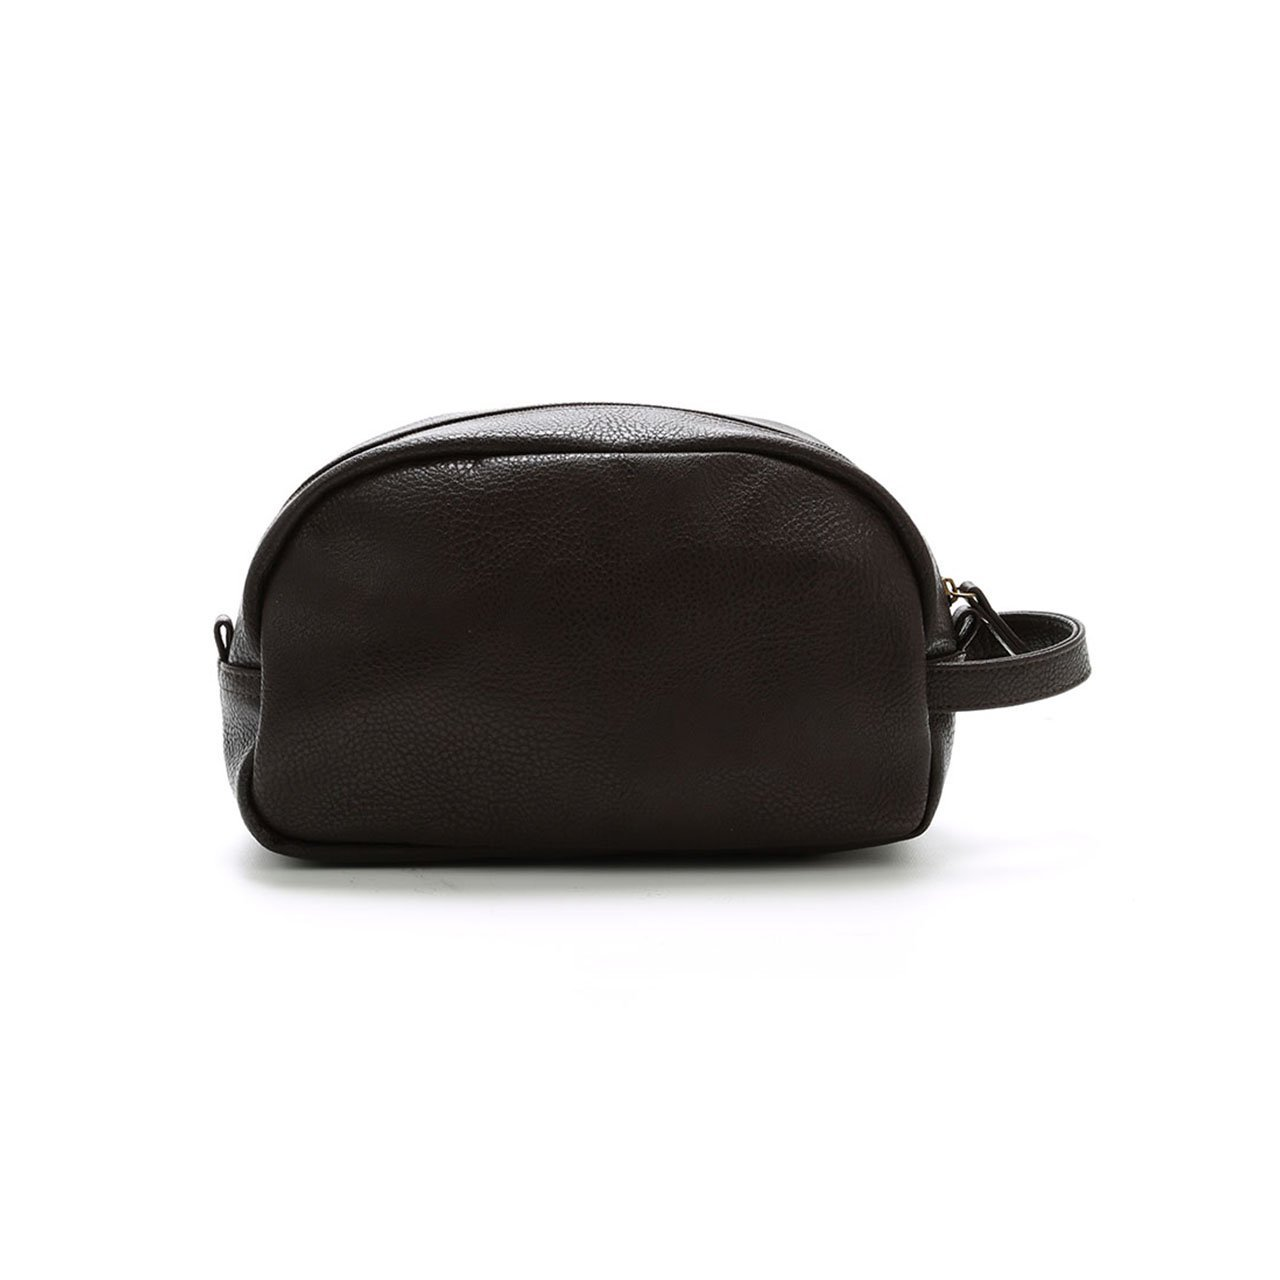 Dopp Kit - Braden Vegan Leather Dopp Kit